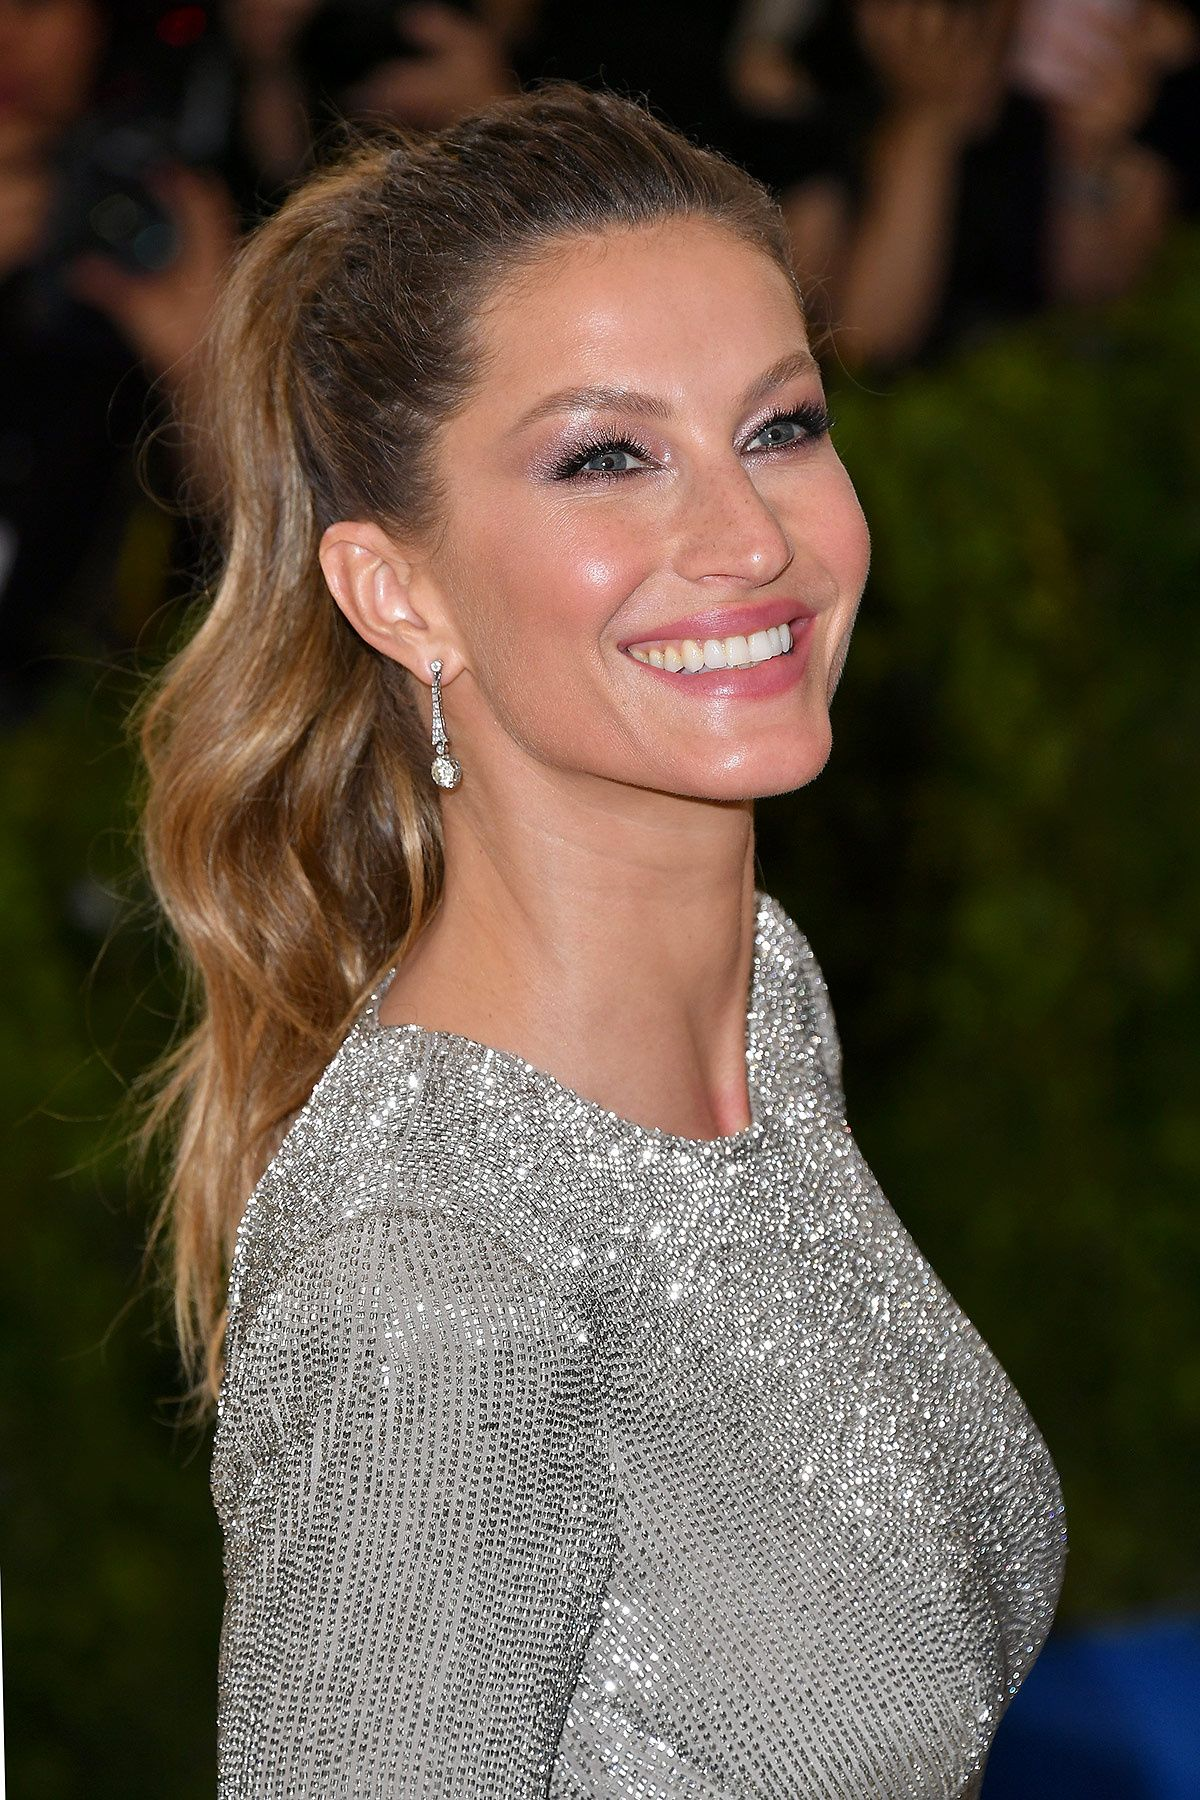 2019 year for lady- Get the gisele look bundchen 2